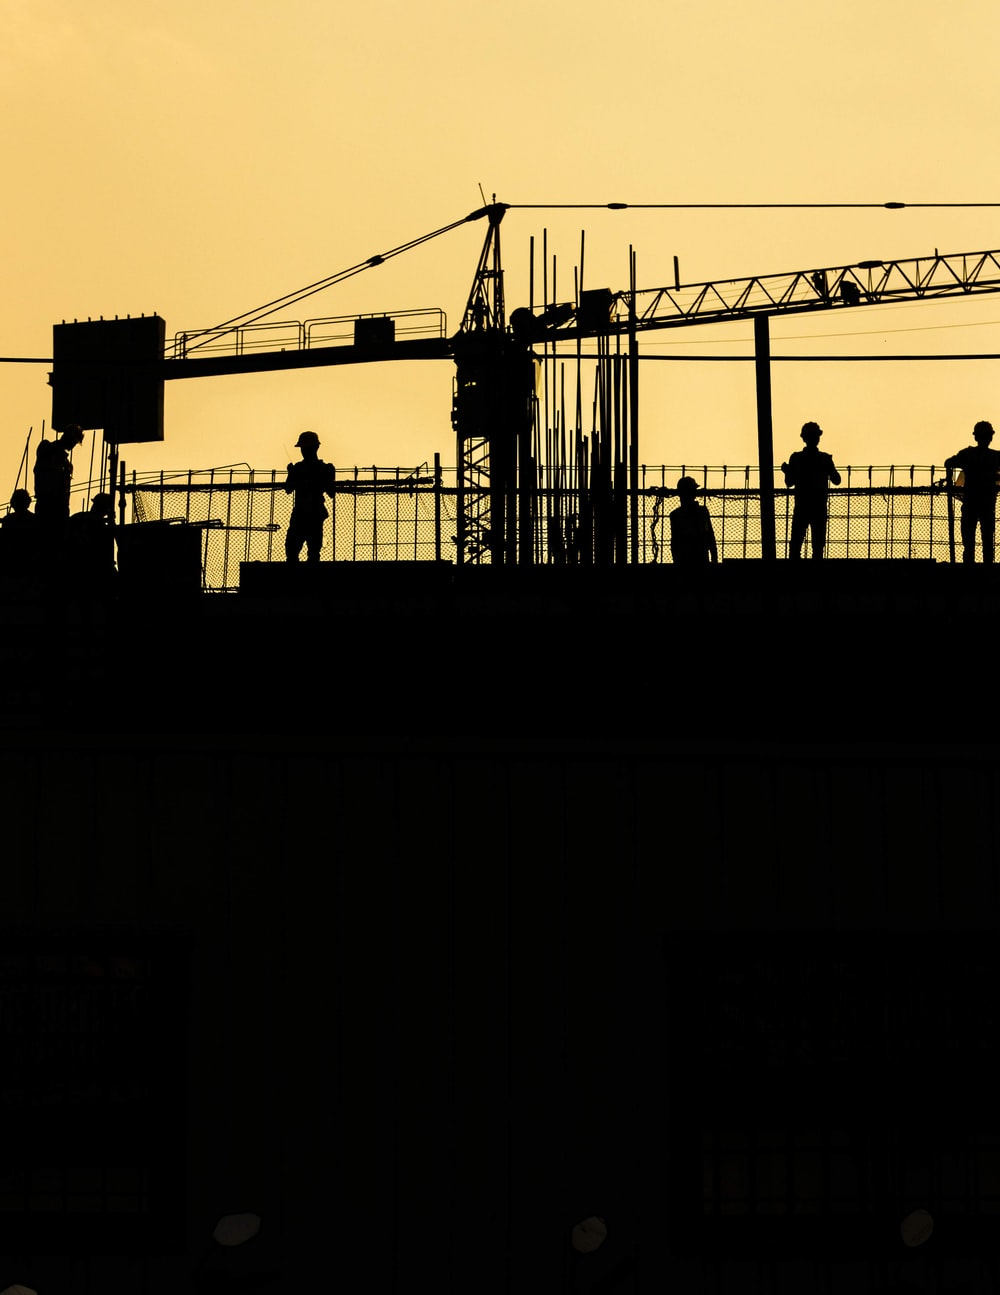 silhouette of people standing on tower crane during night time